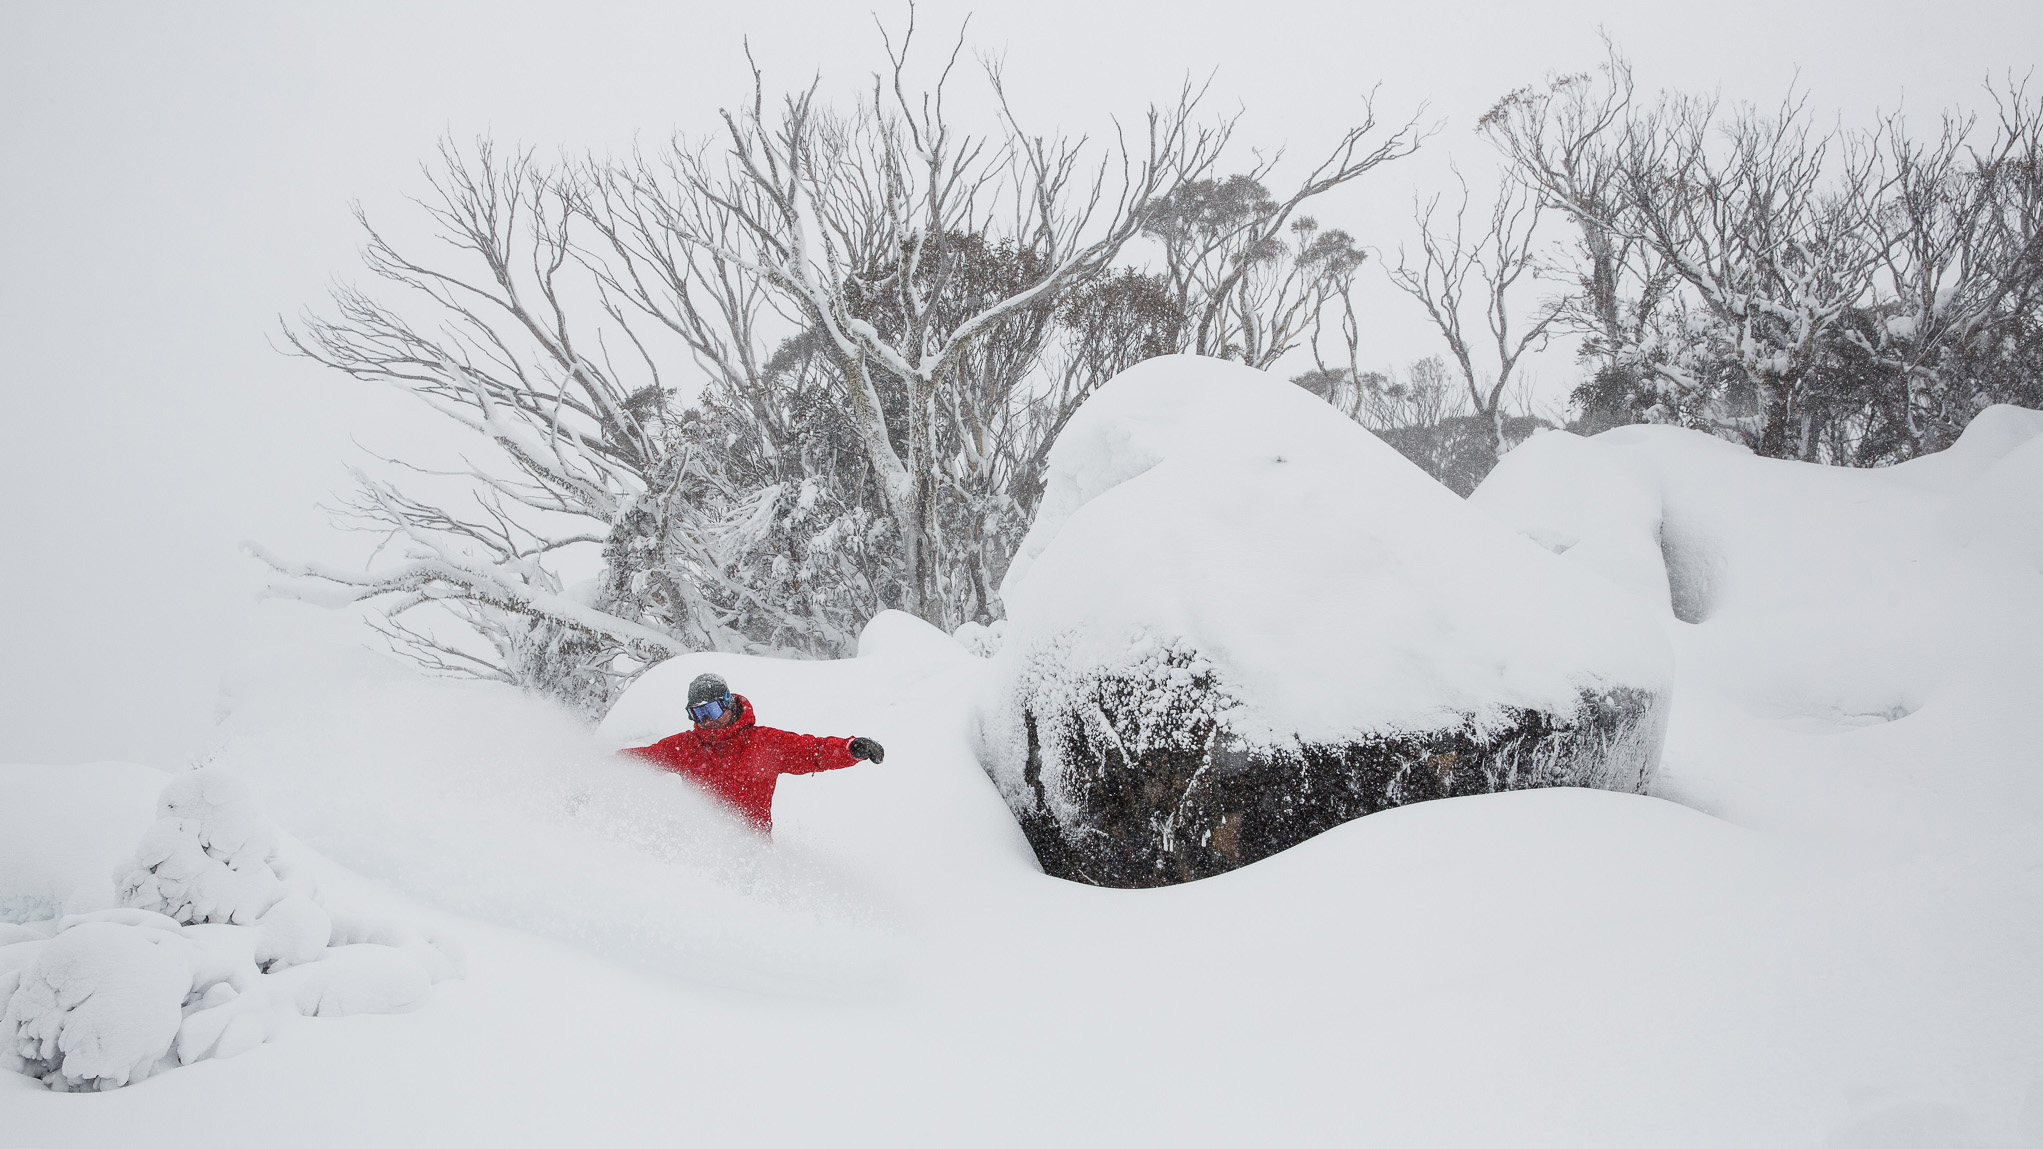 Record snowfall brought bumper conditions for skiers and snowboarders at Thredbo on Saturday. (Supplied)